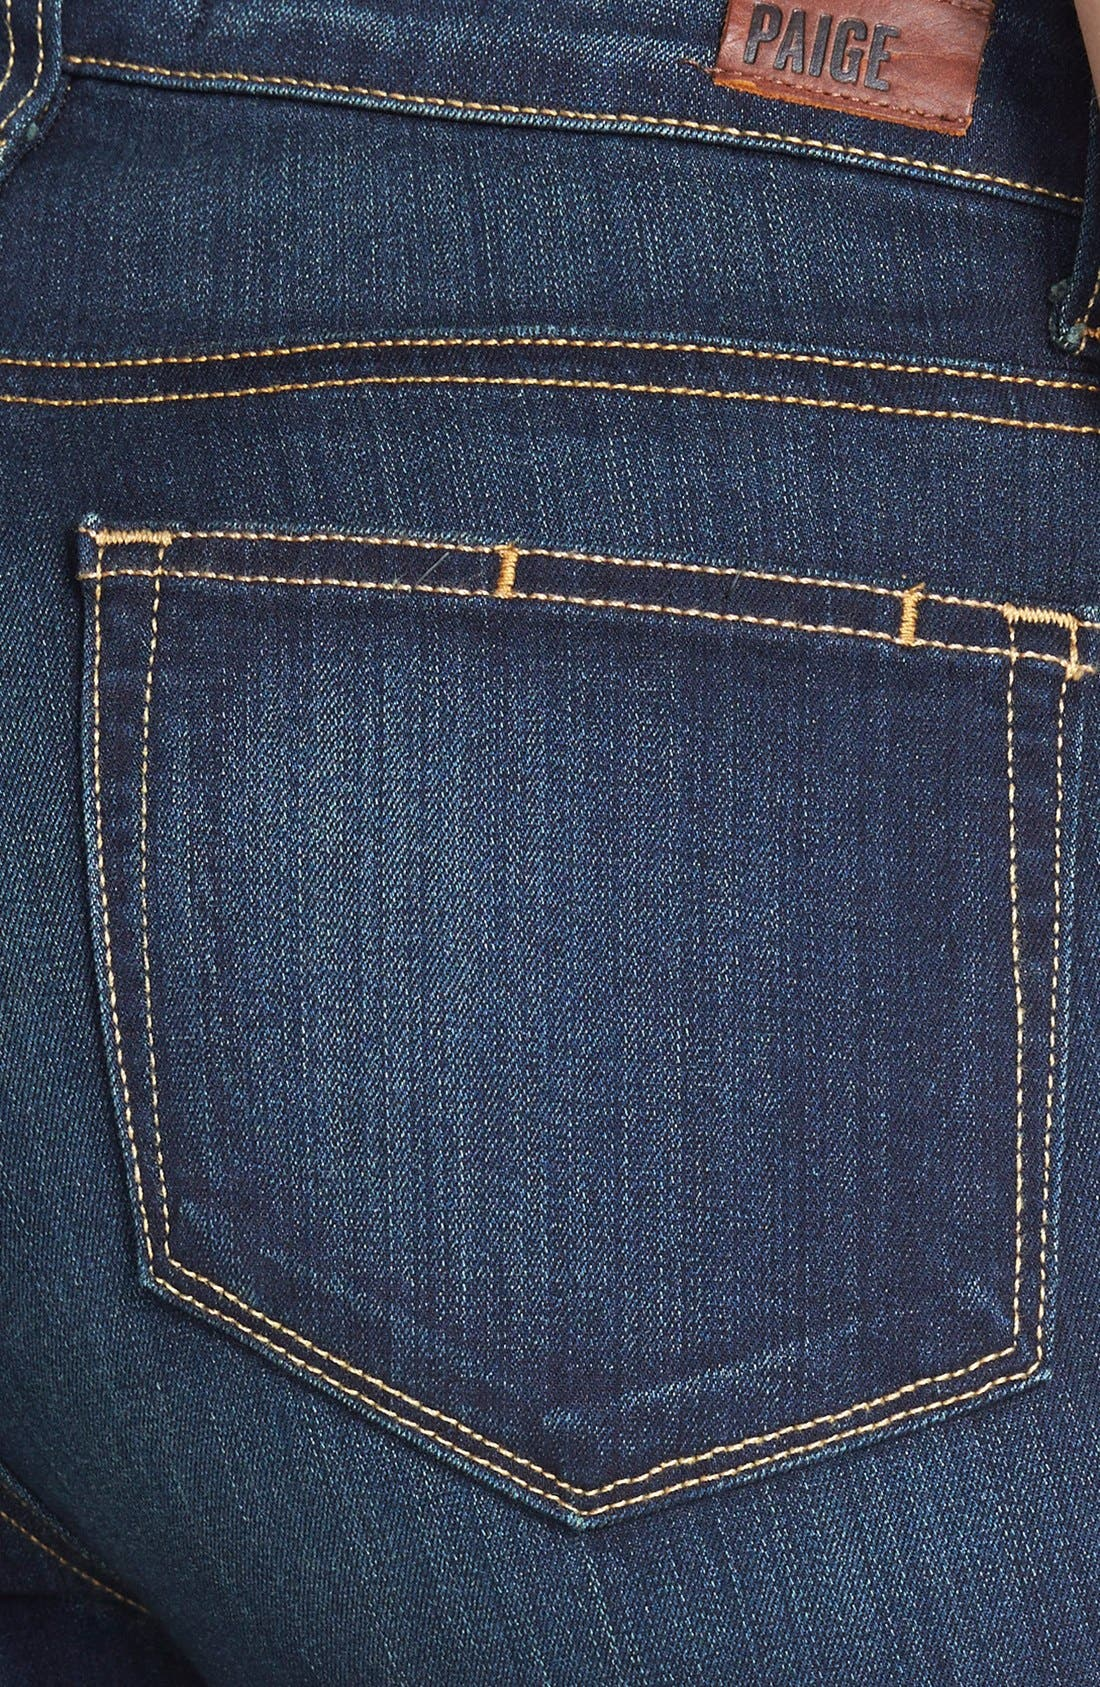 PAIGE, 'Transcend - Margot' High Rise Ultra Skinny Stretch Jeans, Alternate thumbnail 3, color, 400